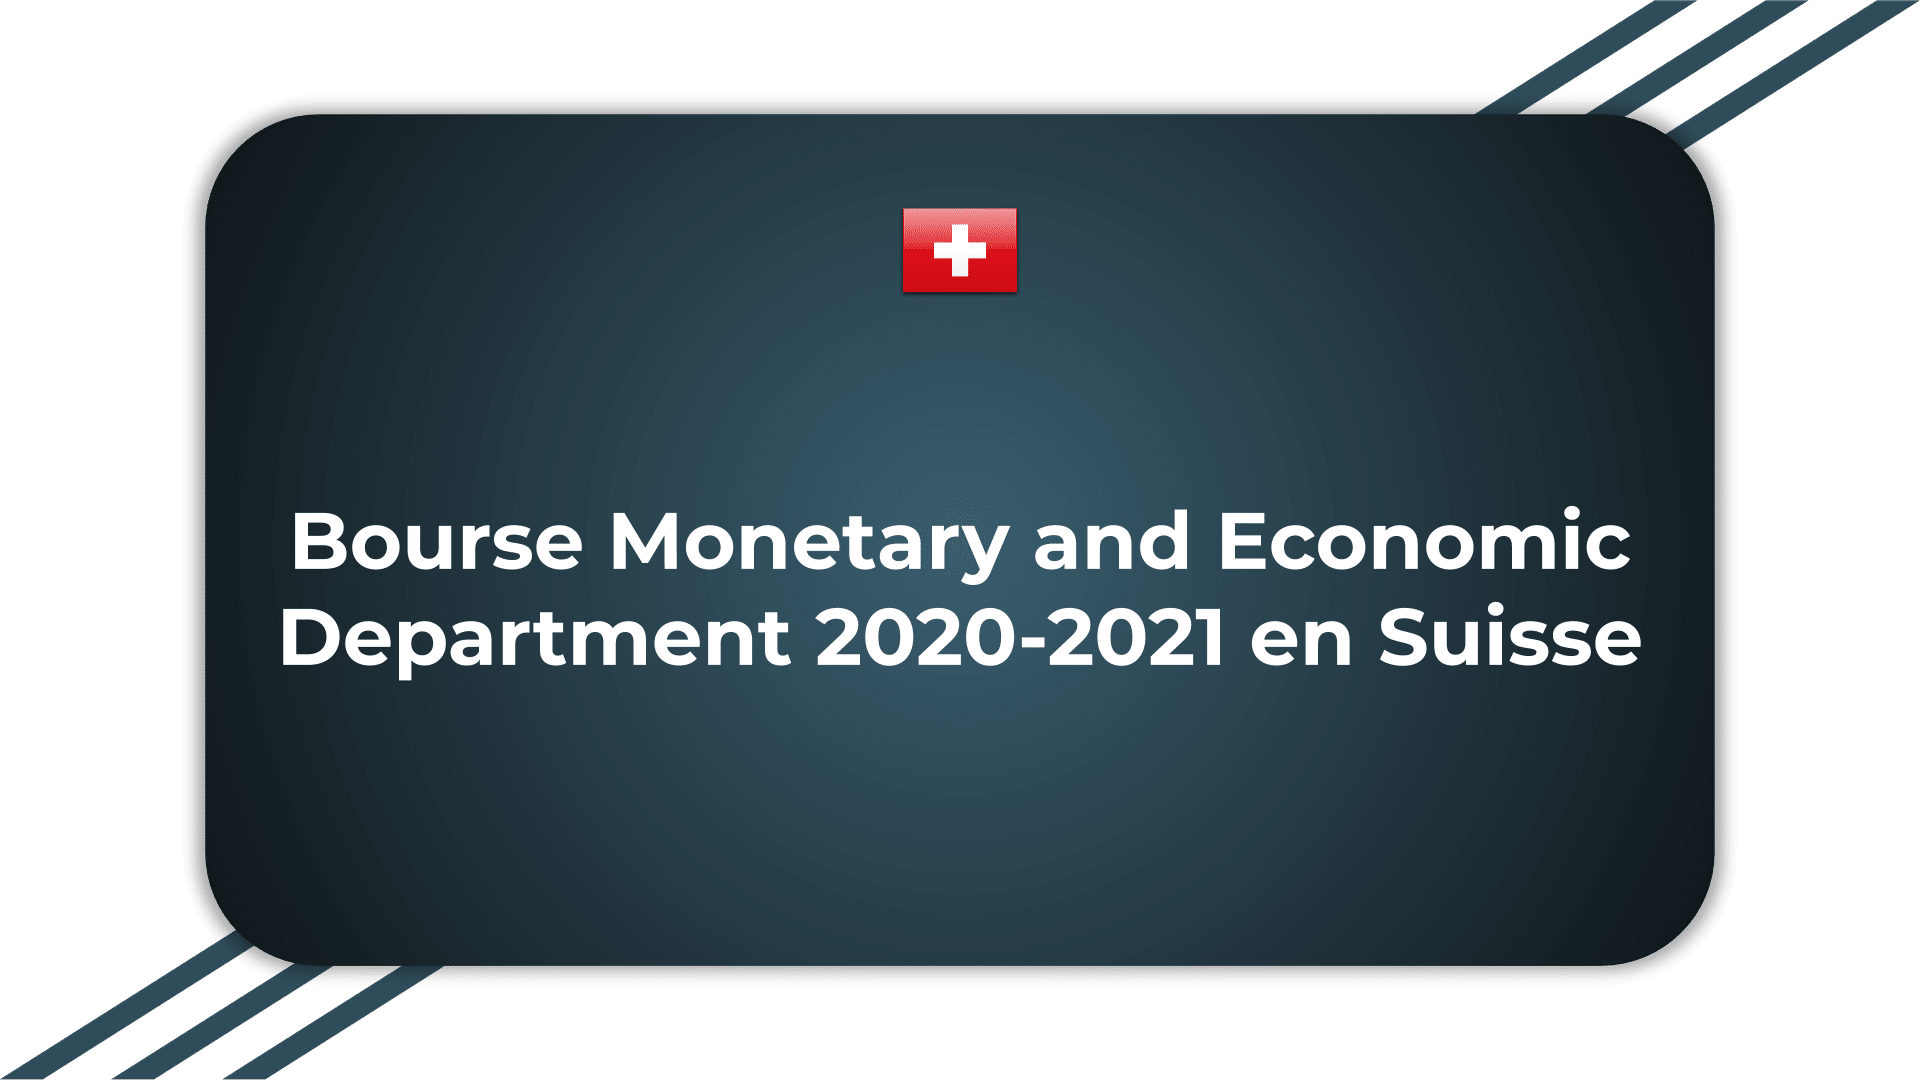 Bourse Monetary and Economic Department